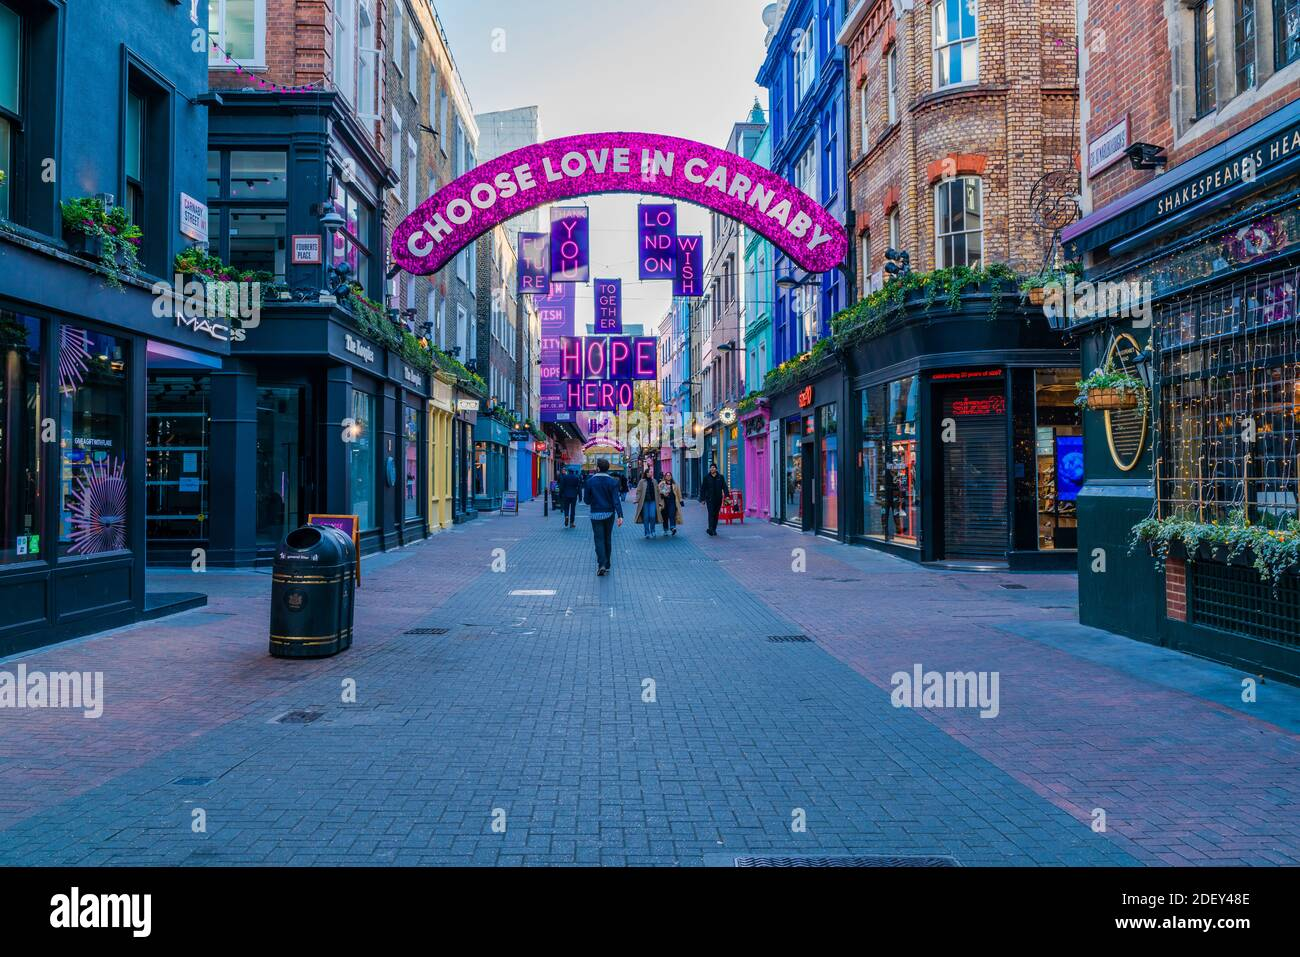 LONDON, UK - DECEMBER 01, 2020 -  This year Carnaby street Christmas decorations, created in collaboration with the Choose Love charity, carry a messa Stock Photo